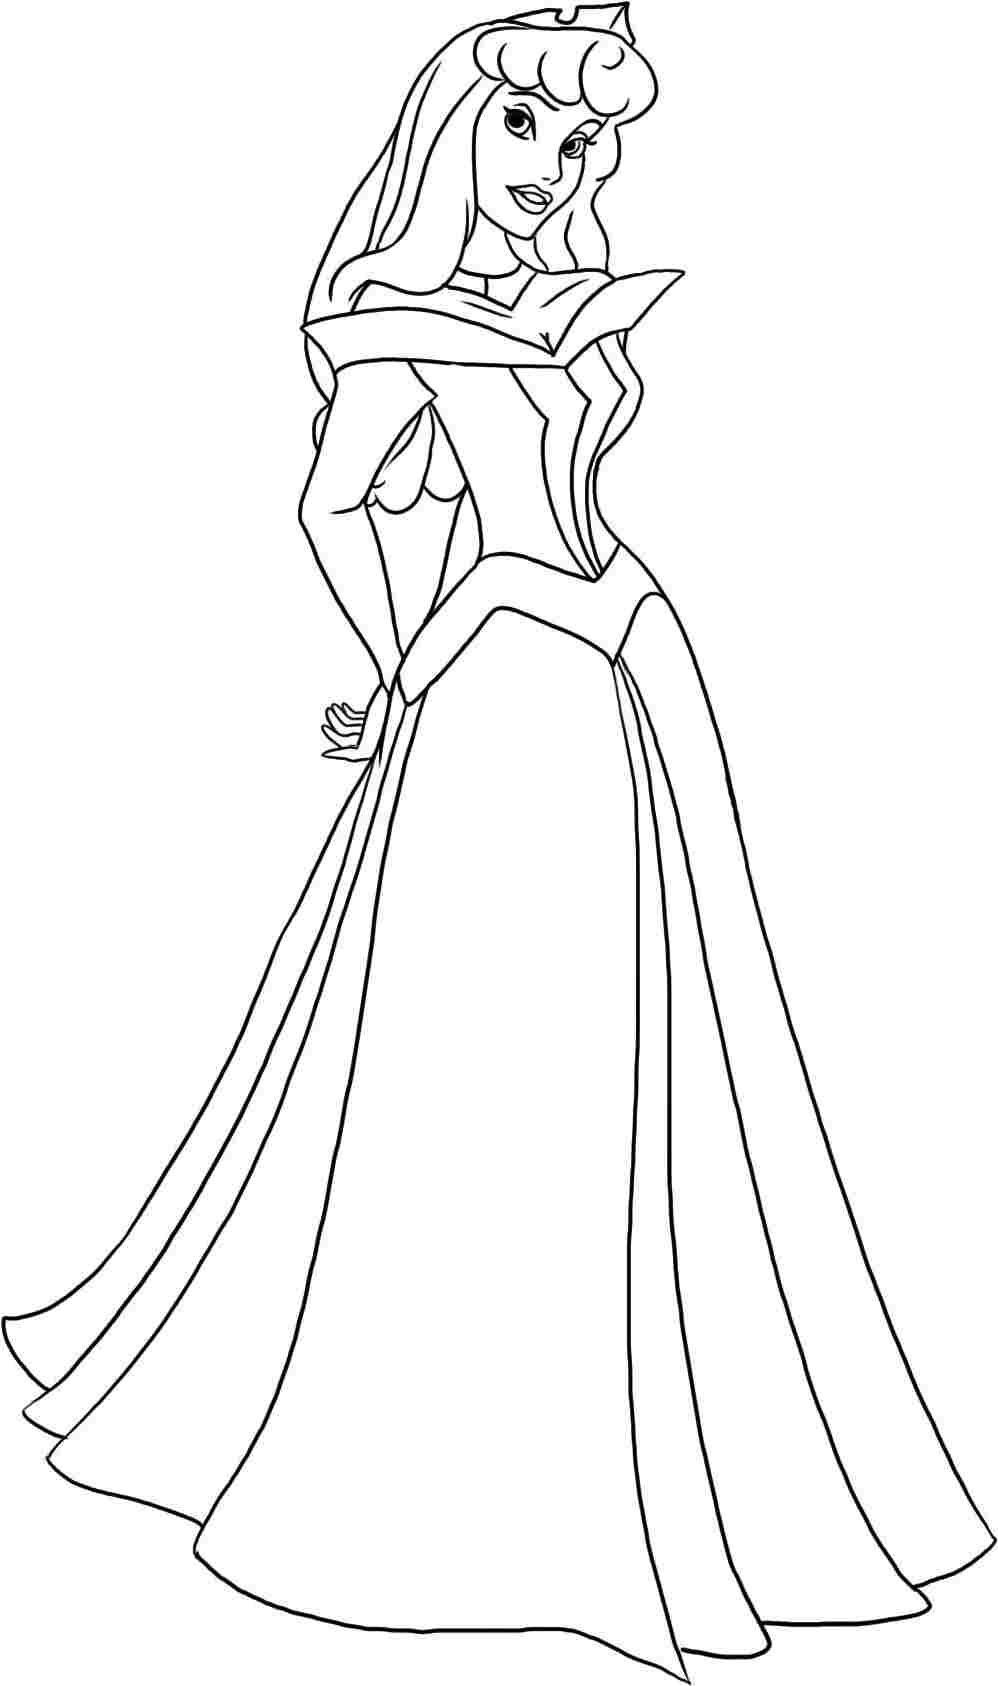 Sleeping Beauty Colouring Pages Clip Art Library